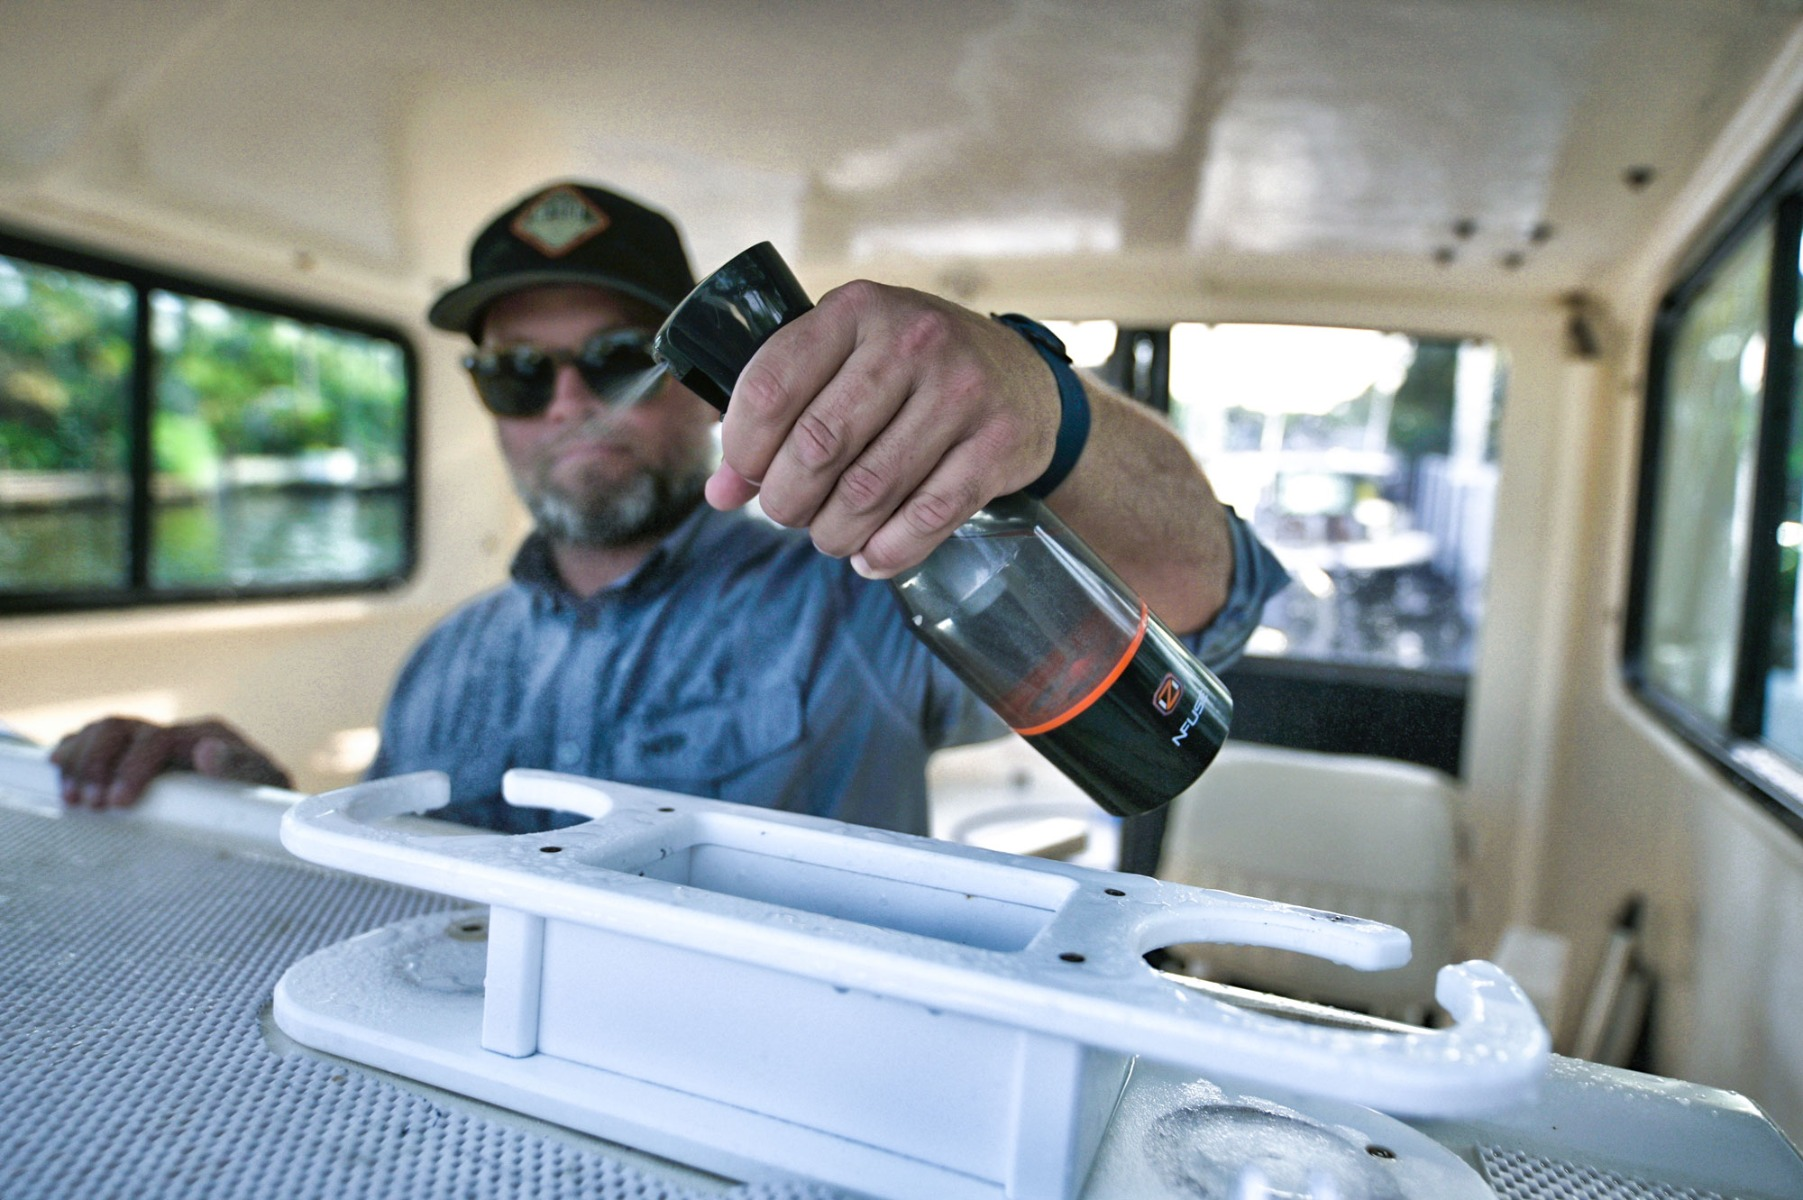 man cleaning boat with oz nfuse ozone sprayer